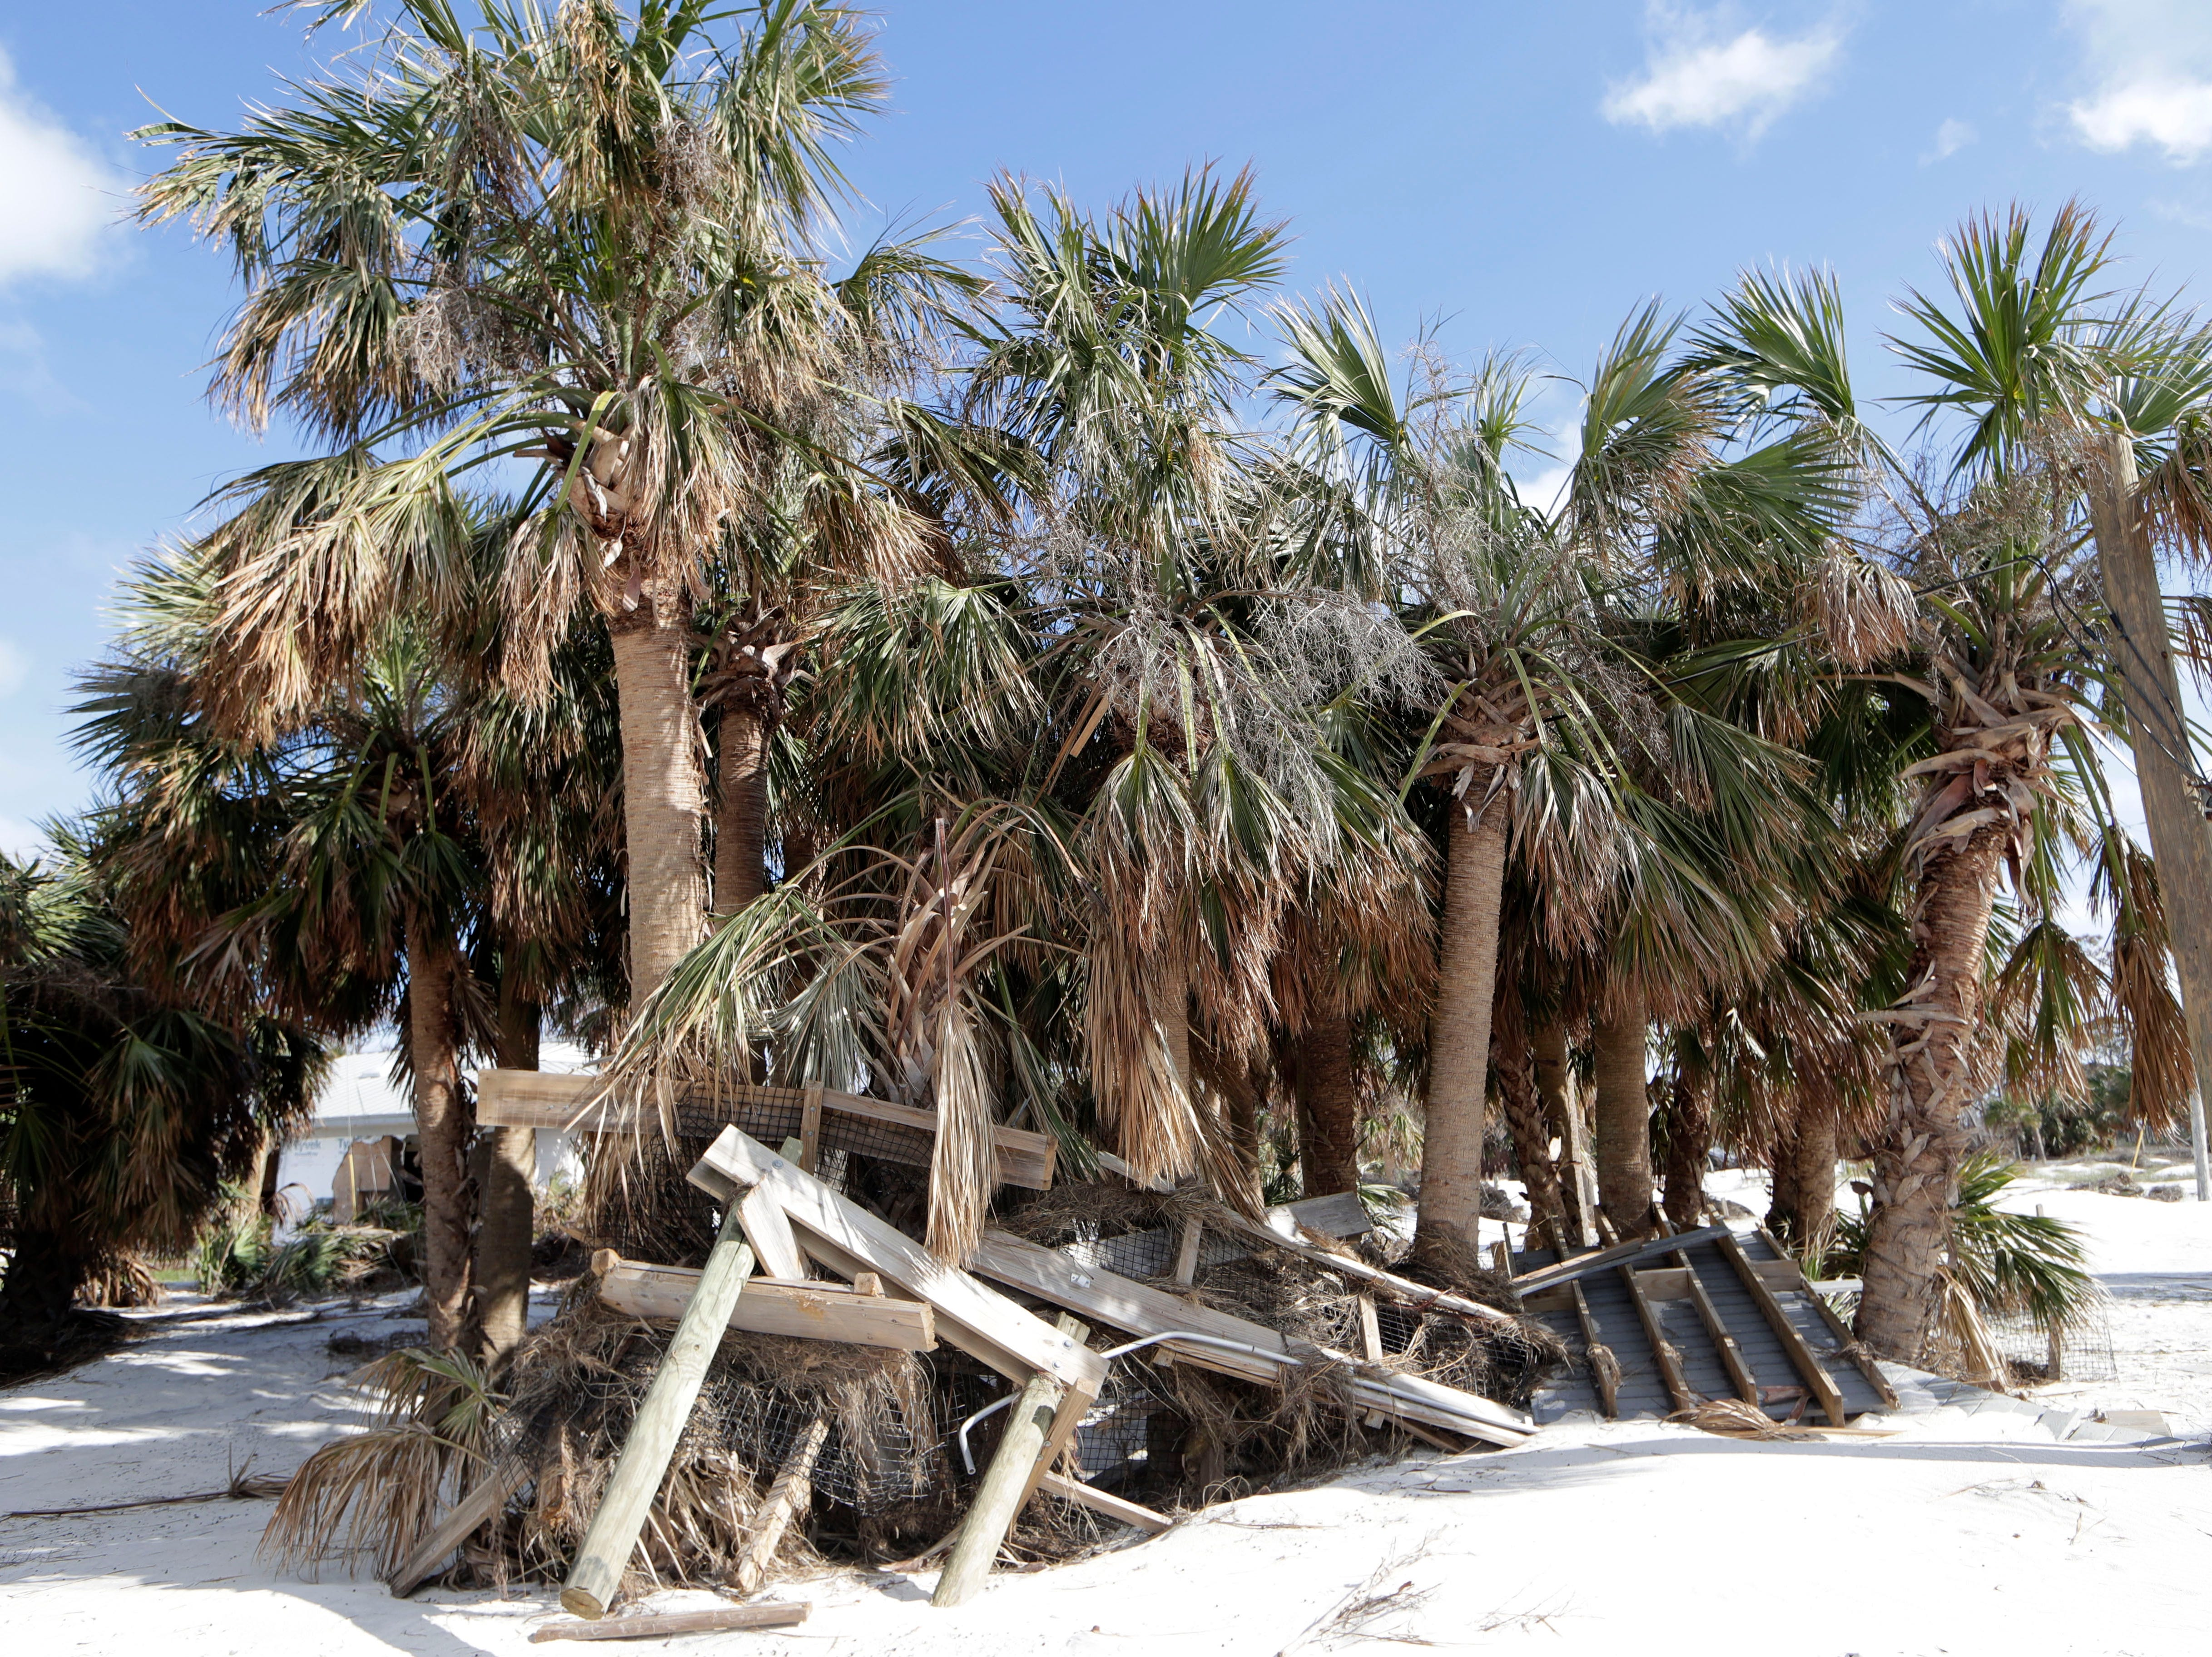 Part of the boardwalk that once led from the center of St. Joseph Peninsula State Park to the shoreline is now tangled with palm trees, Monday, Jan. 14, 2019. Hurricane Michael hit the panhandle three months prior and left a mess of destruction behind.